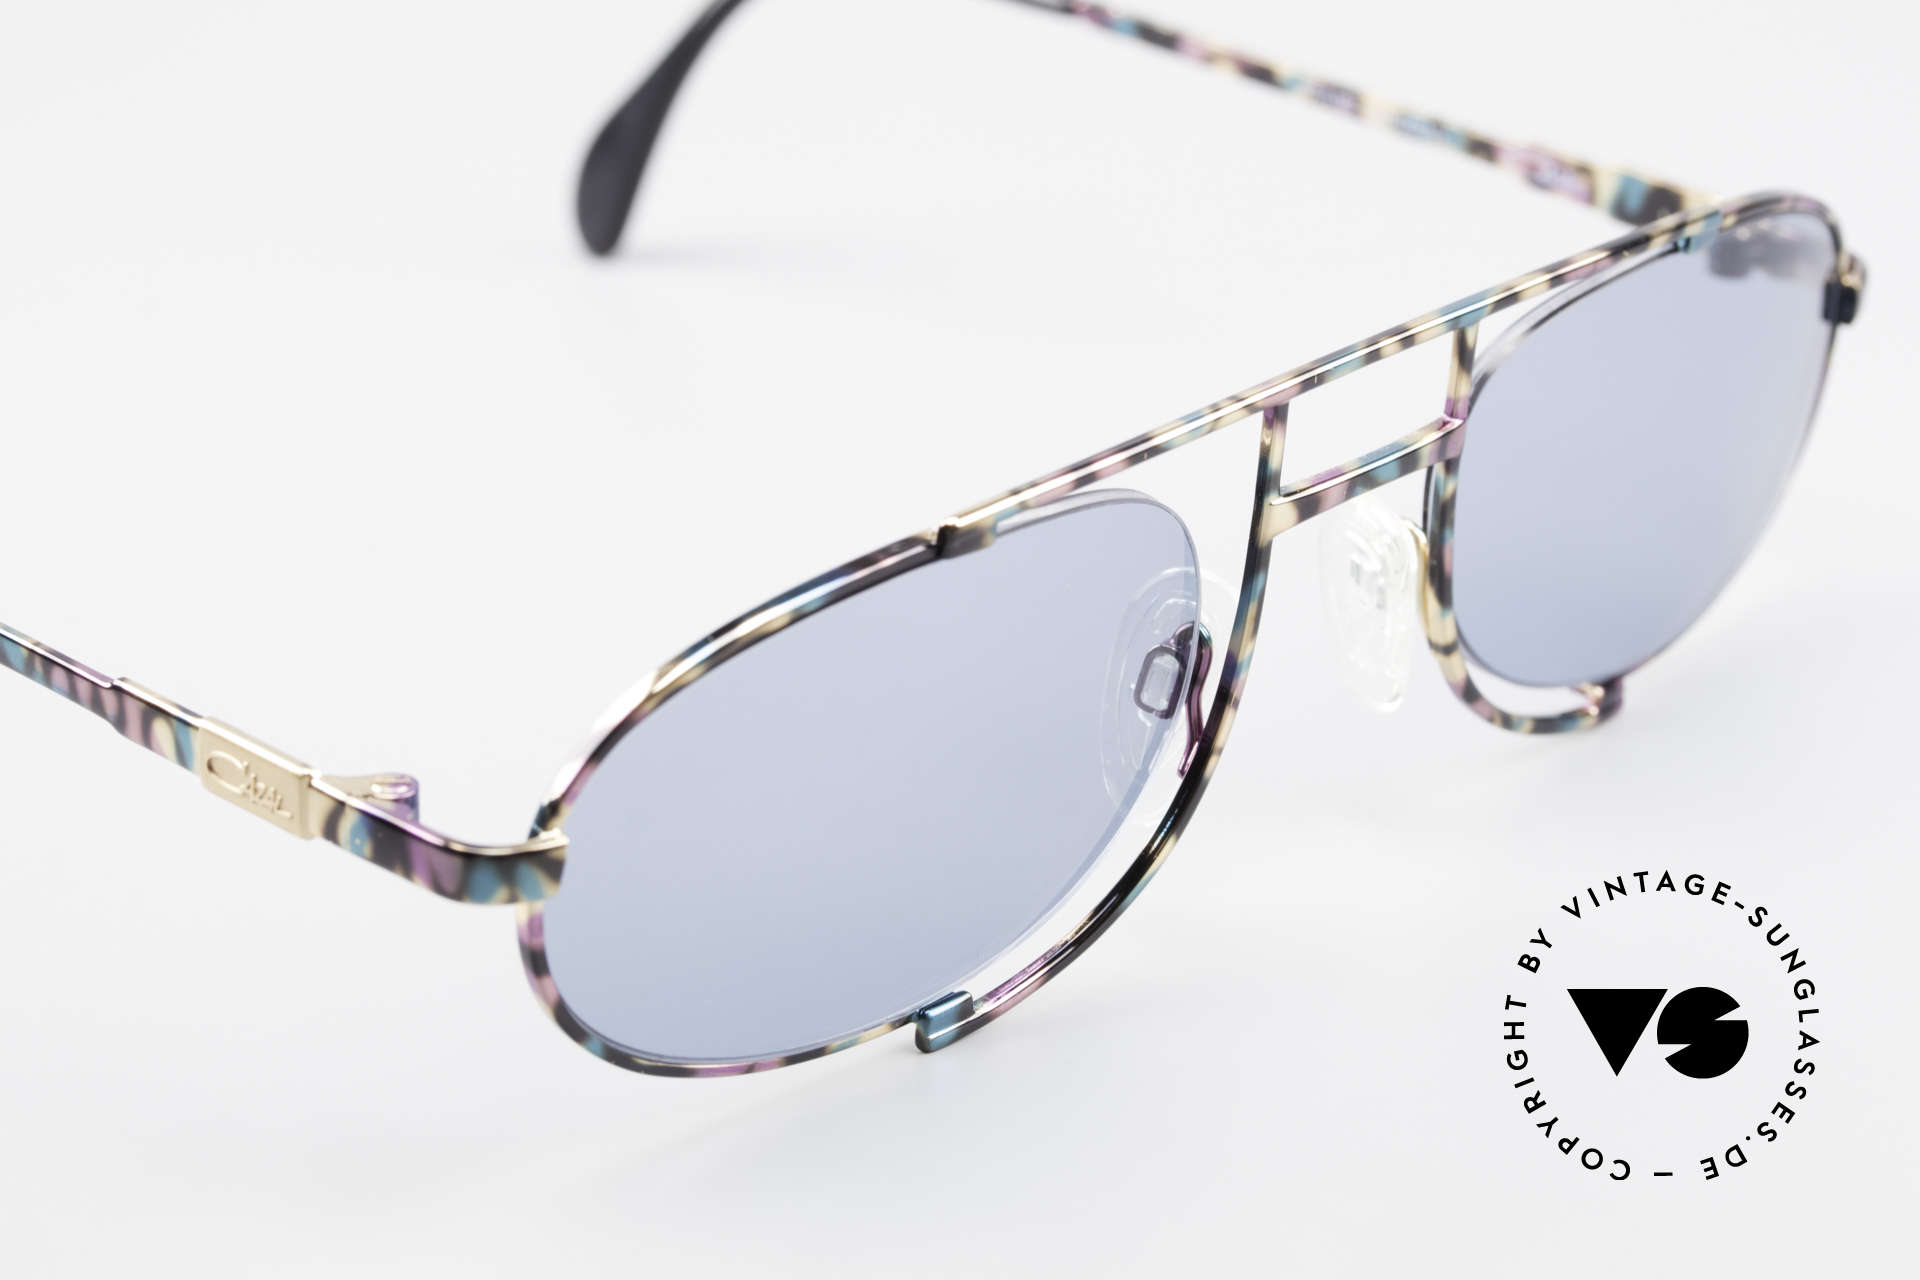 Cazal 753 Oval 90's Designer Sunglasses, Cazal called the paintwork 'petrol-aubergine-black', Made for Men